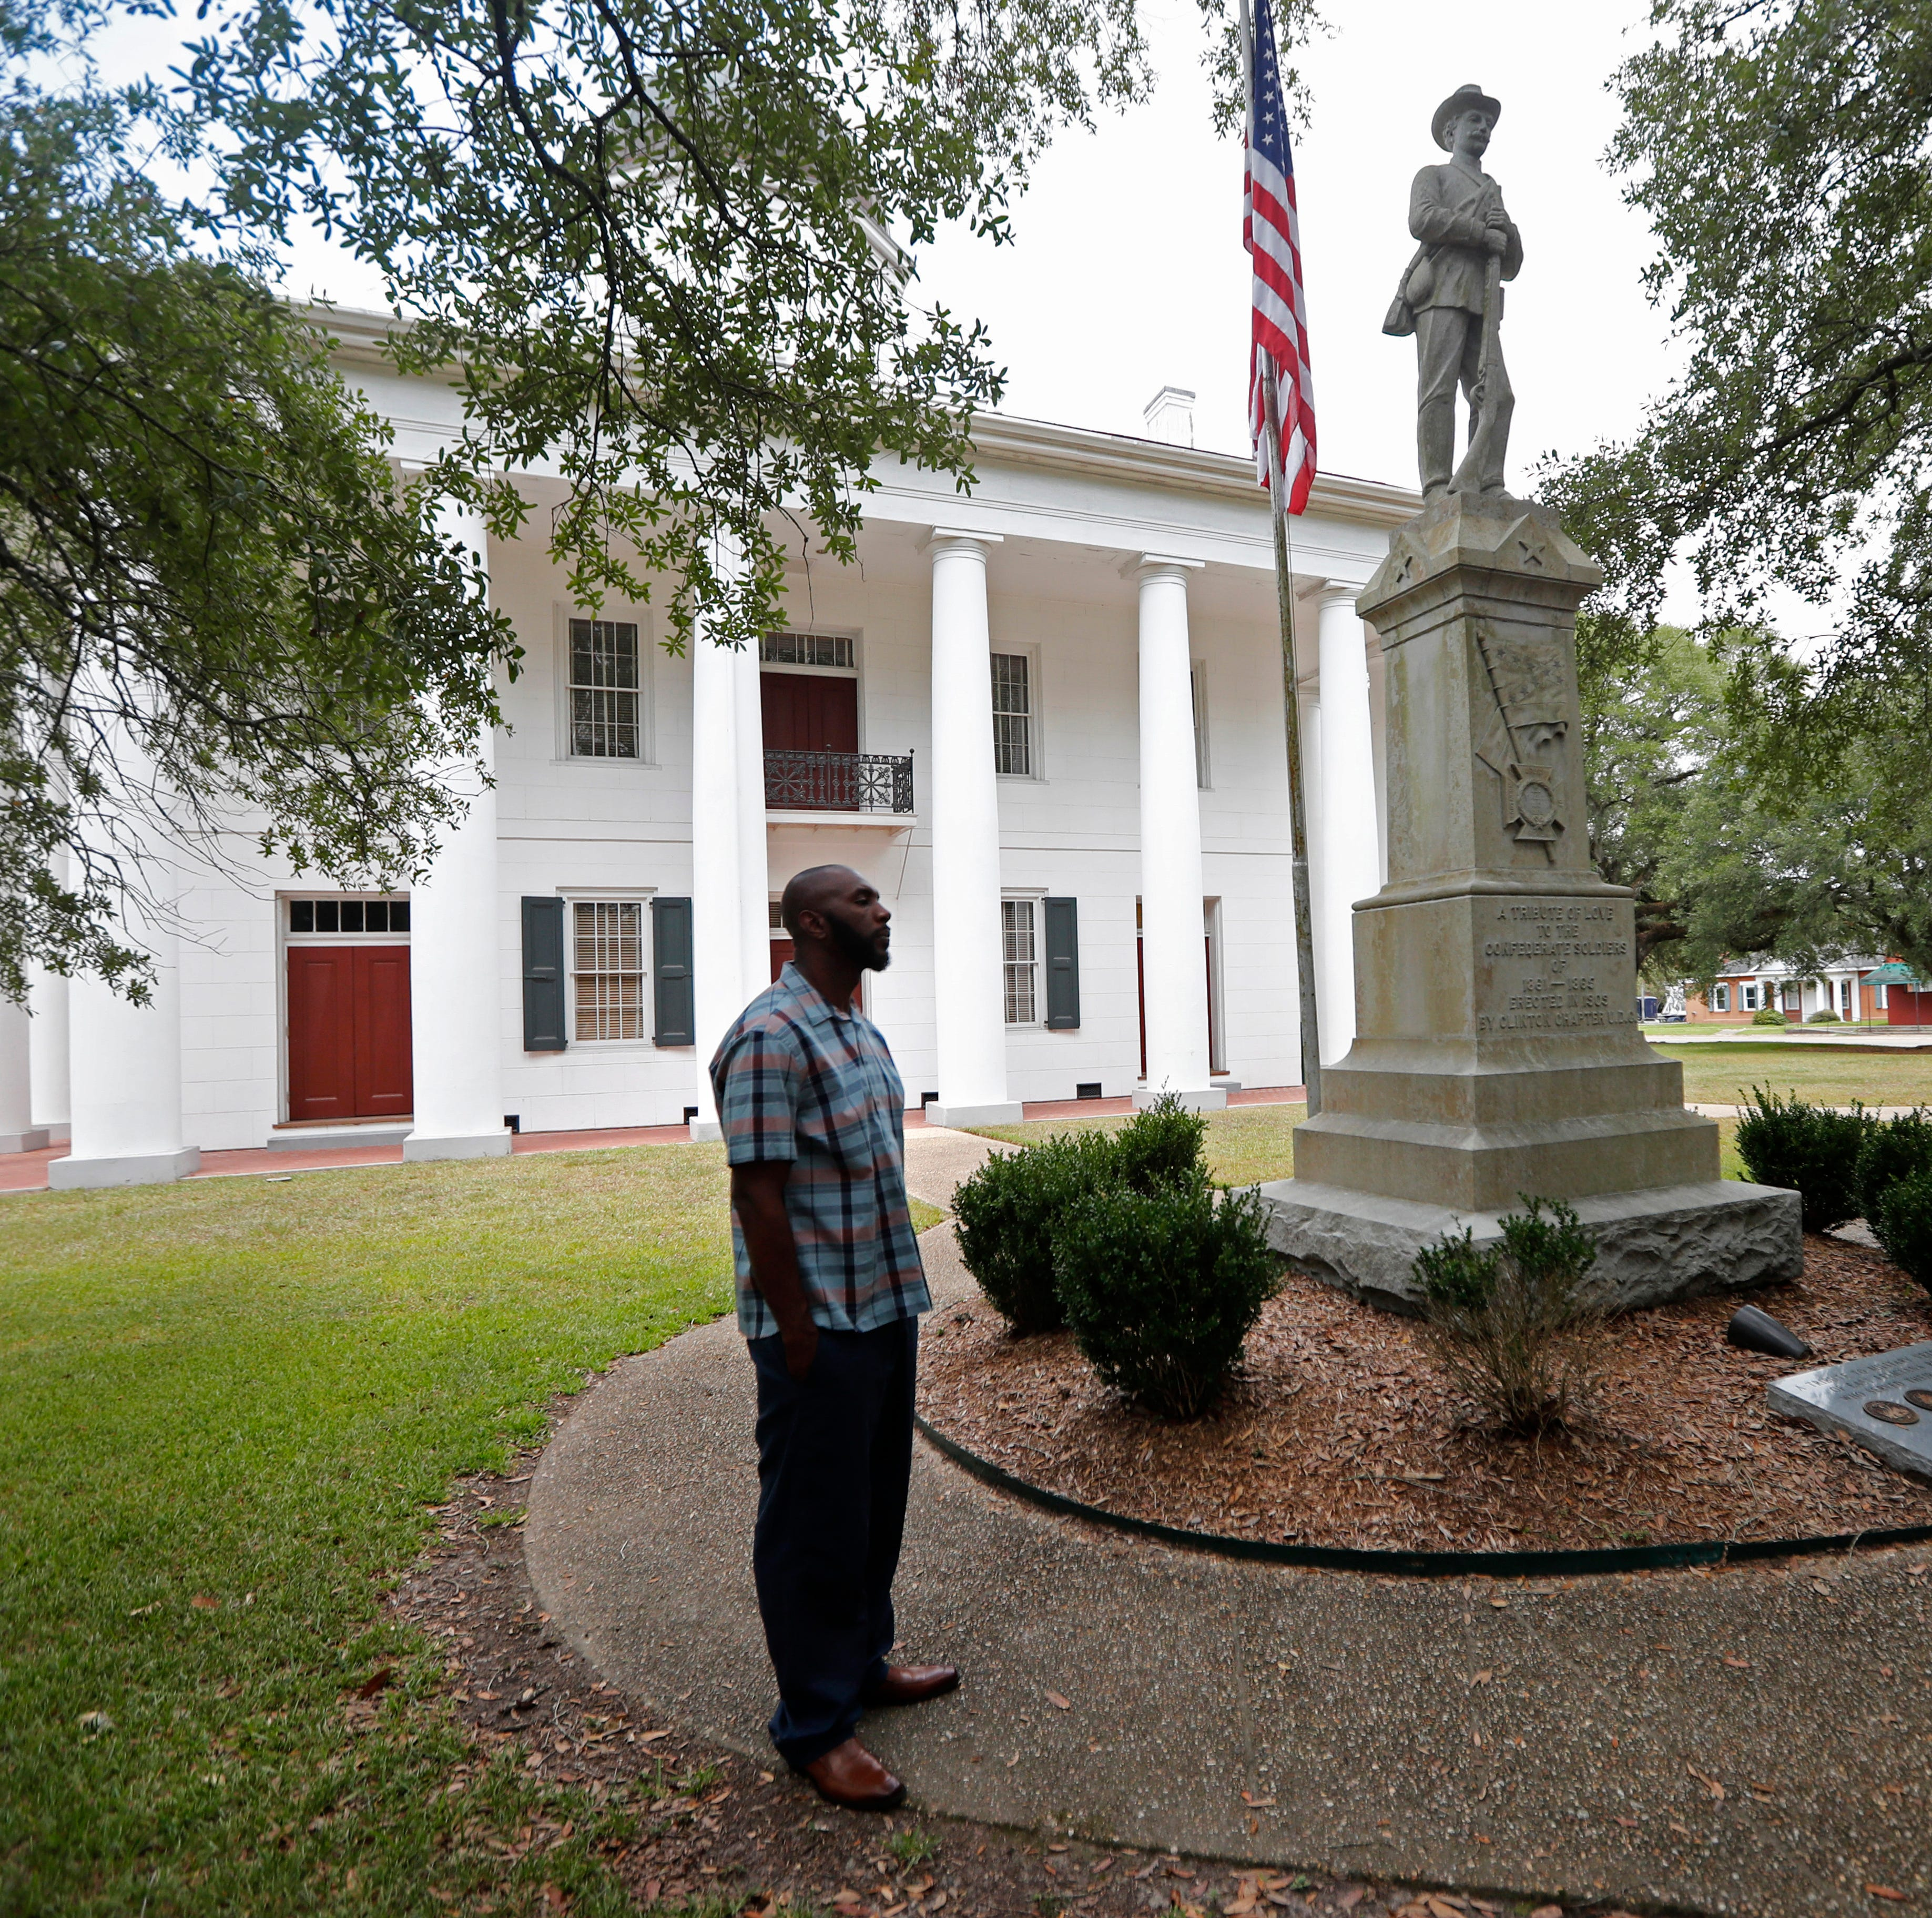 Lawyer says client can't get fair trial at courthouse with Confederate statue